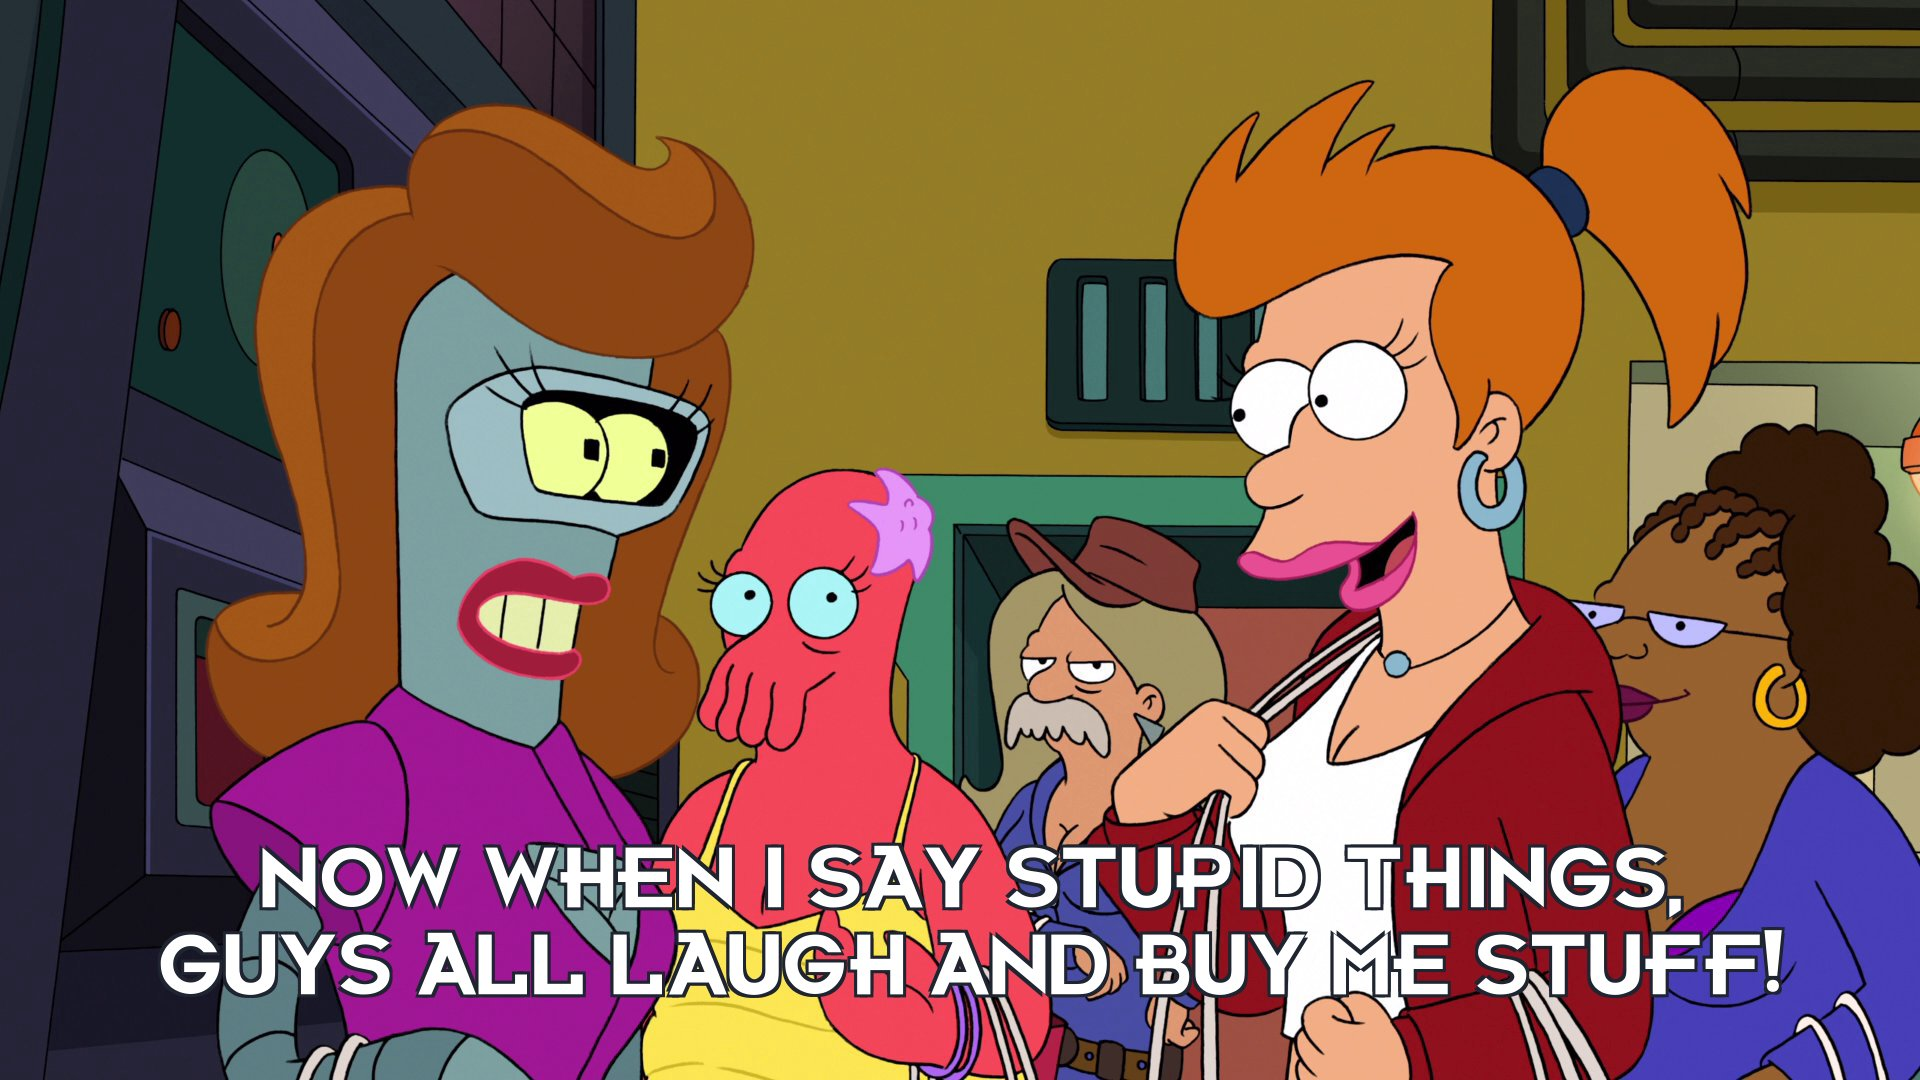 Female Philip J Fry: Now when I say stupid things, guys all laugh and buy me stuff!